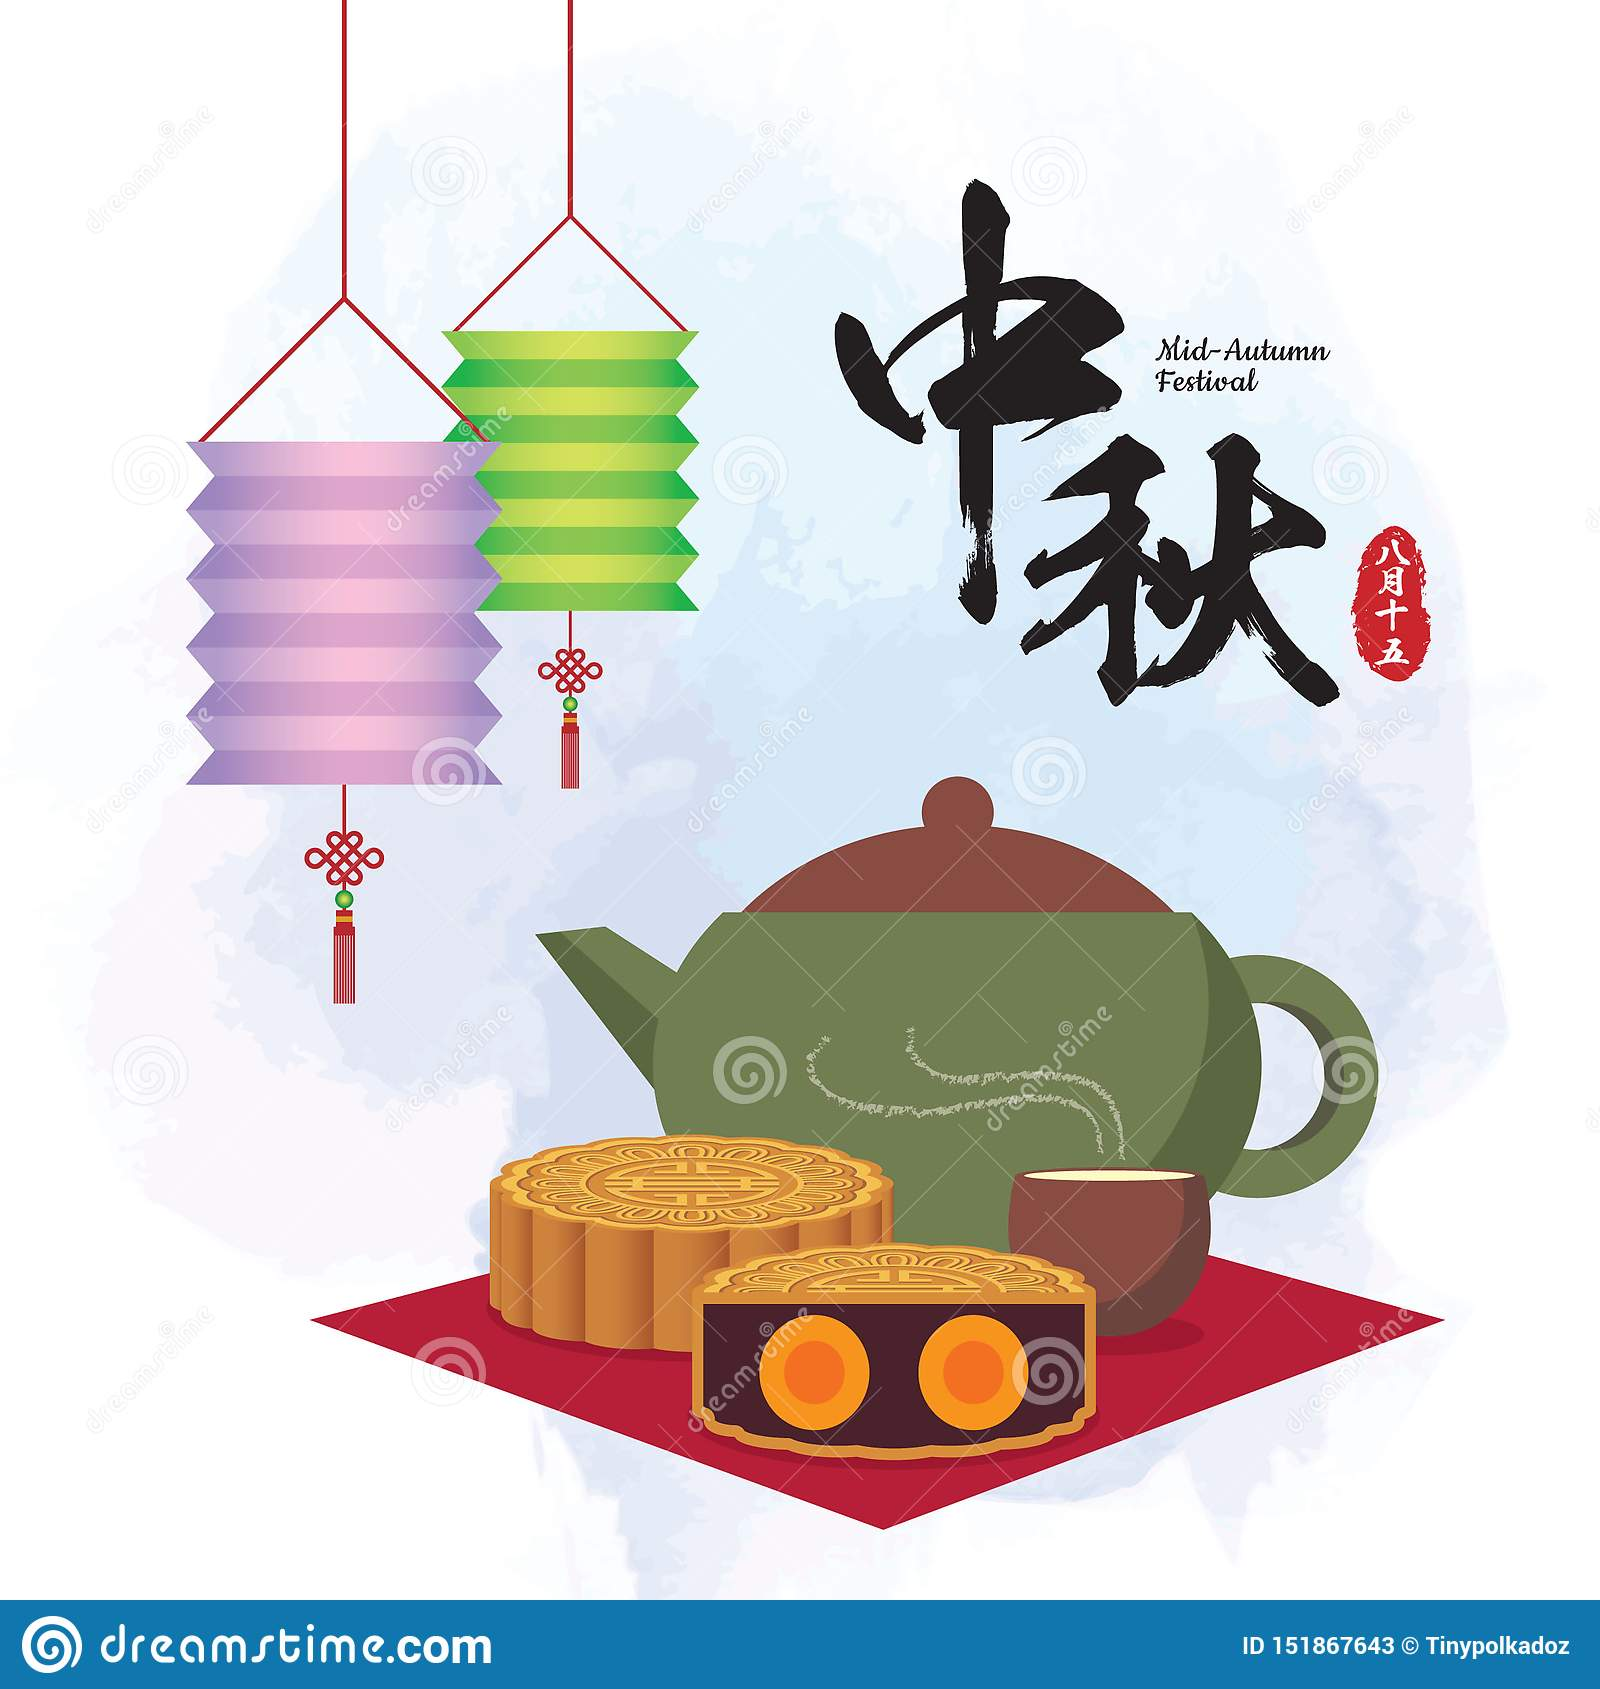 Mid autumn festival of paper lantern, teapot set and mooncake on blue watercolor packground.